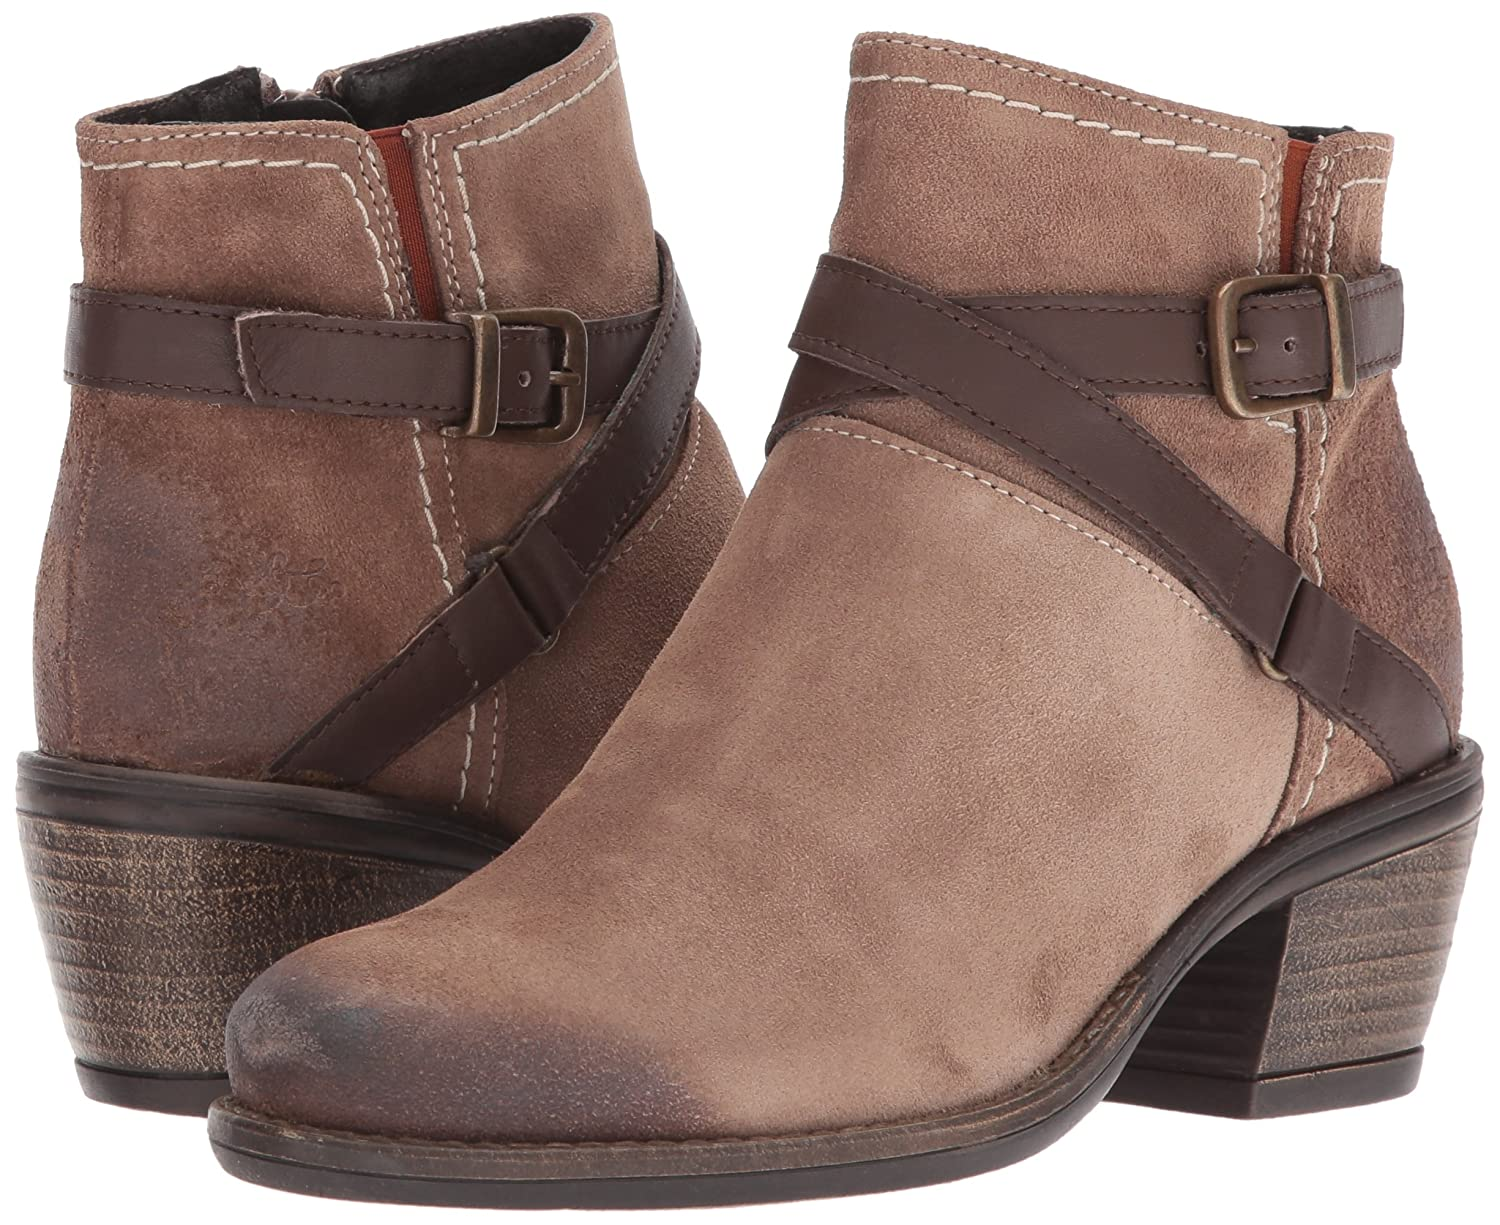 Bos. & Co.. Women's Greenville M Western Boot B06WWL8JKD 40 M Greenville EU (9-9.5 US)|Taupe/Nougat Suede/Miami 72f2c2